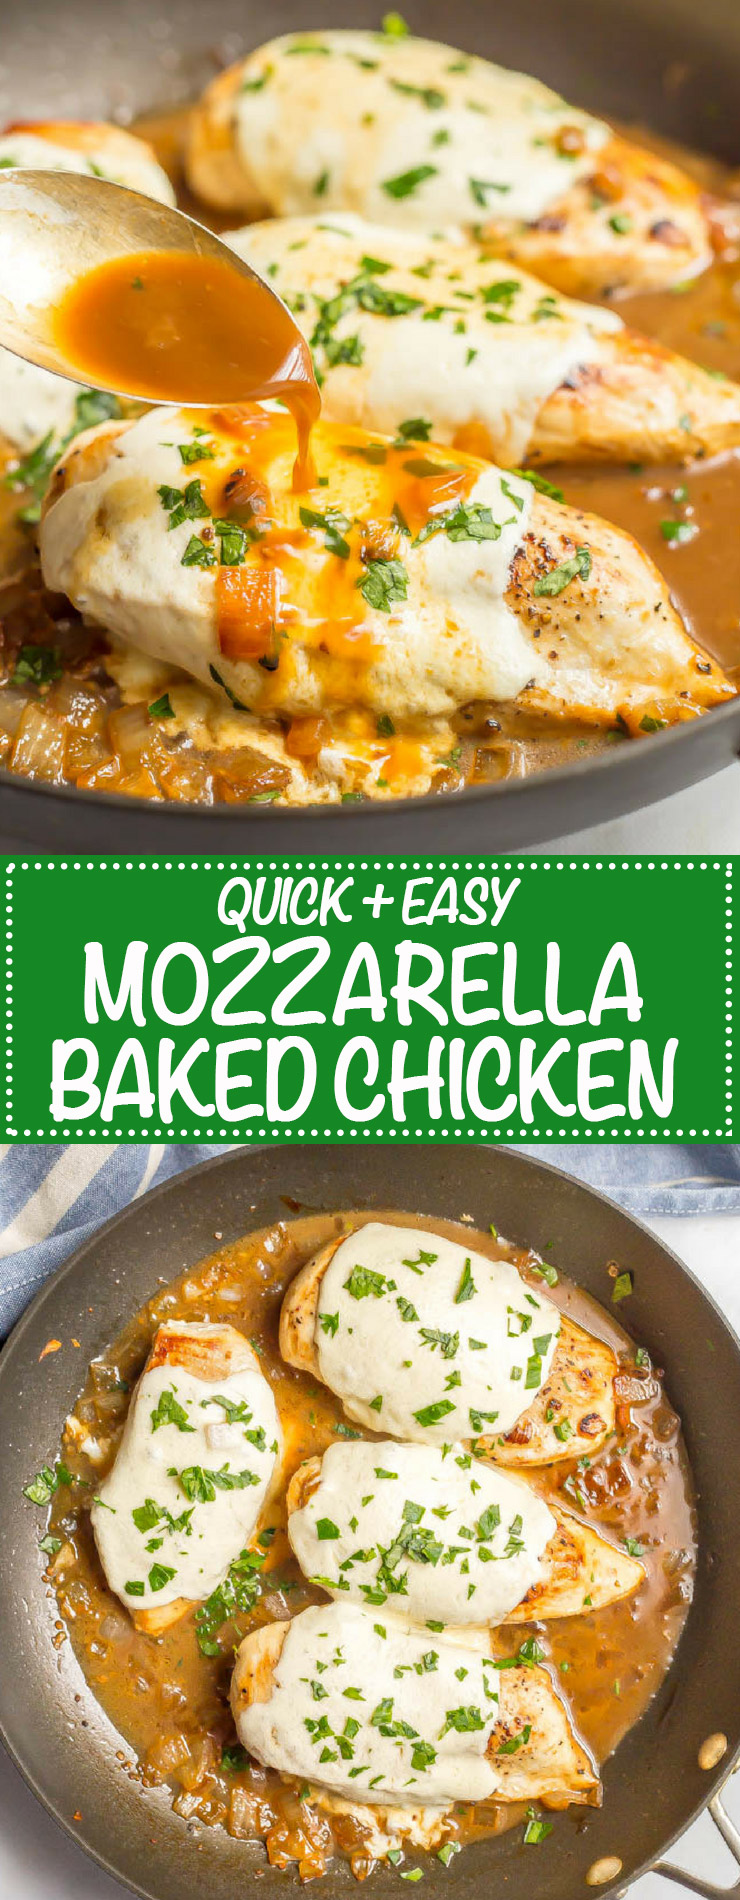 Easy mozzarella baked chicken has just a few simple ingredients but BIG flavor! It's warm and cheesy, requires just 6 ingredients and is ready in just 25 minutes, making it perfect for a quick dinner everyone will love! #easychickenrecipes #quickchickendinners #mozzarellachicken #easybakedchicken | www.familyfoodonthetable.com